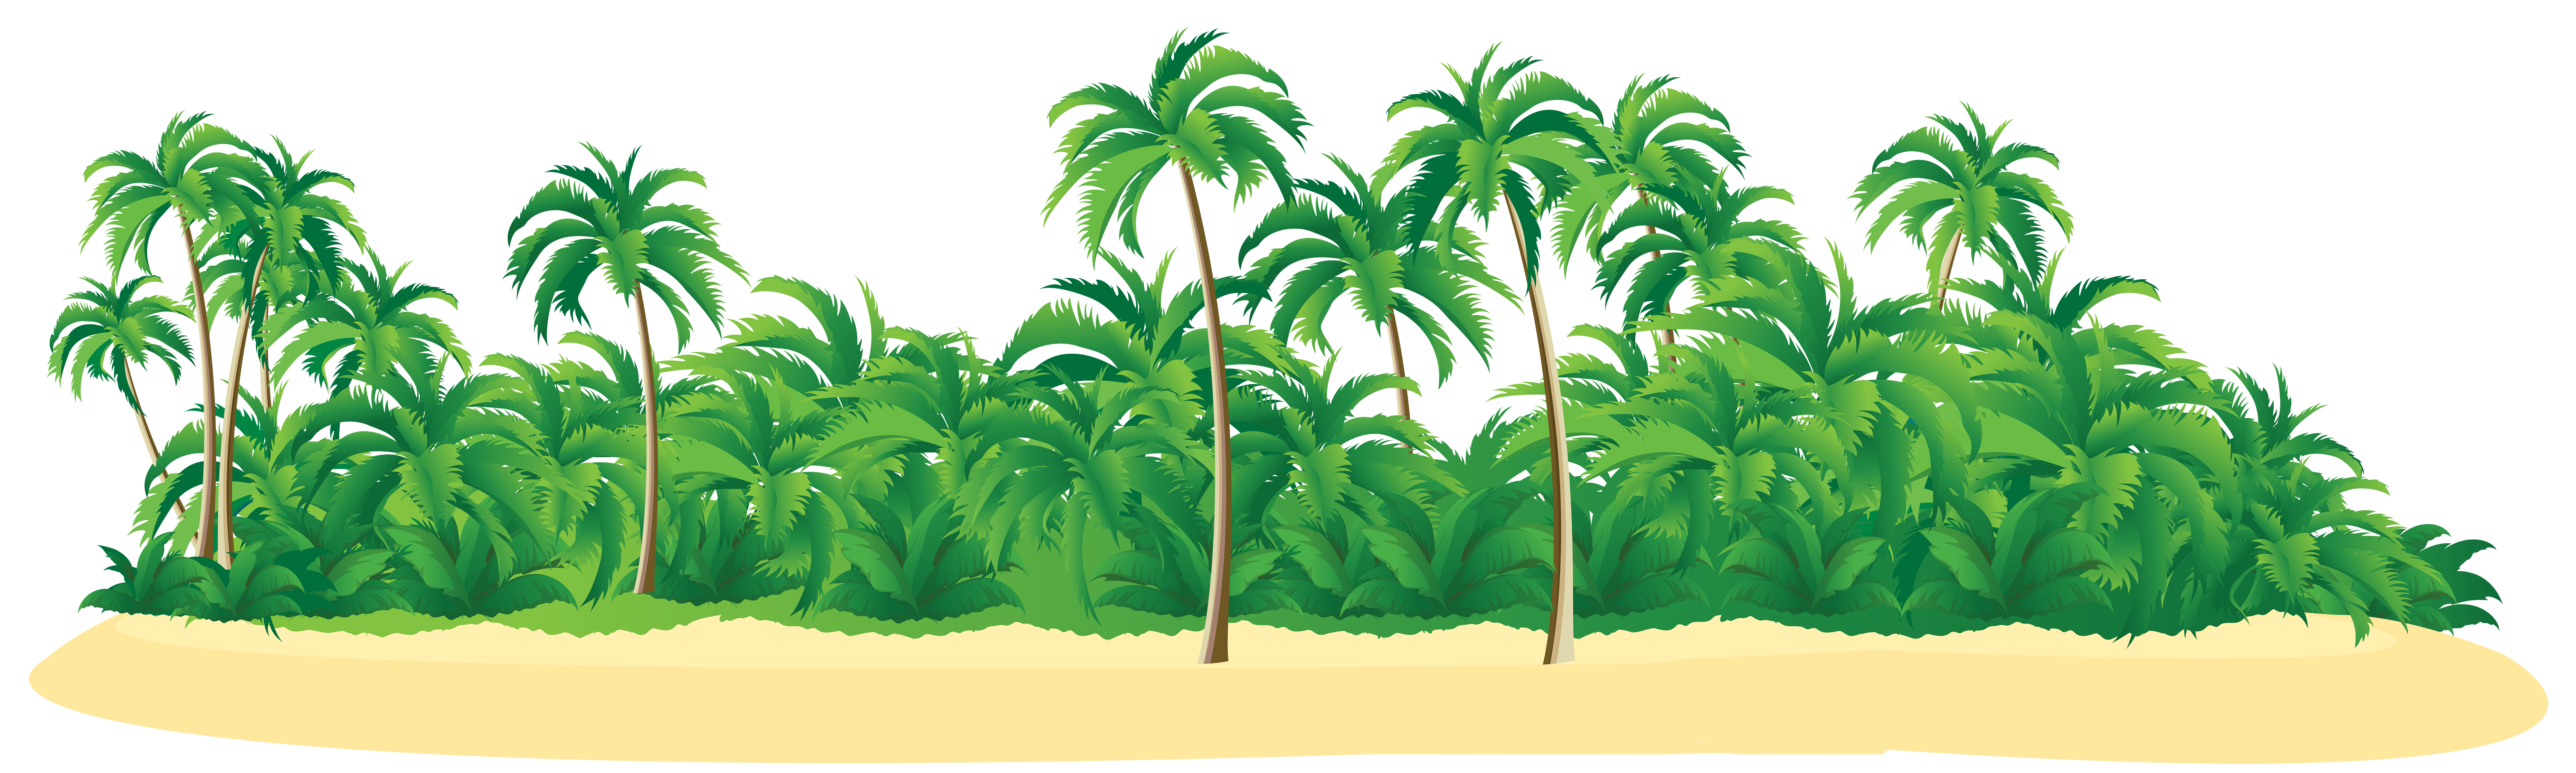 Island clipart tropical island. Summer with palm trees